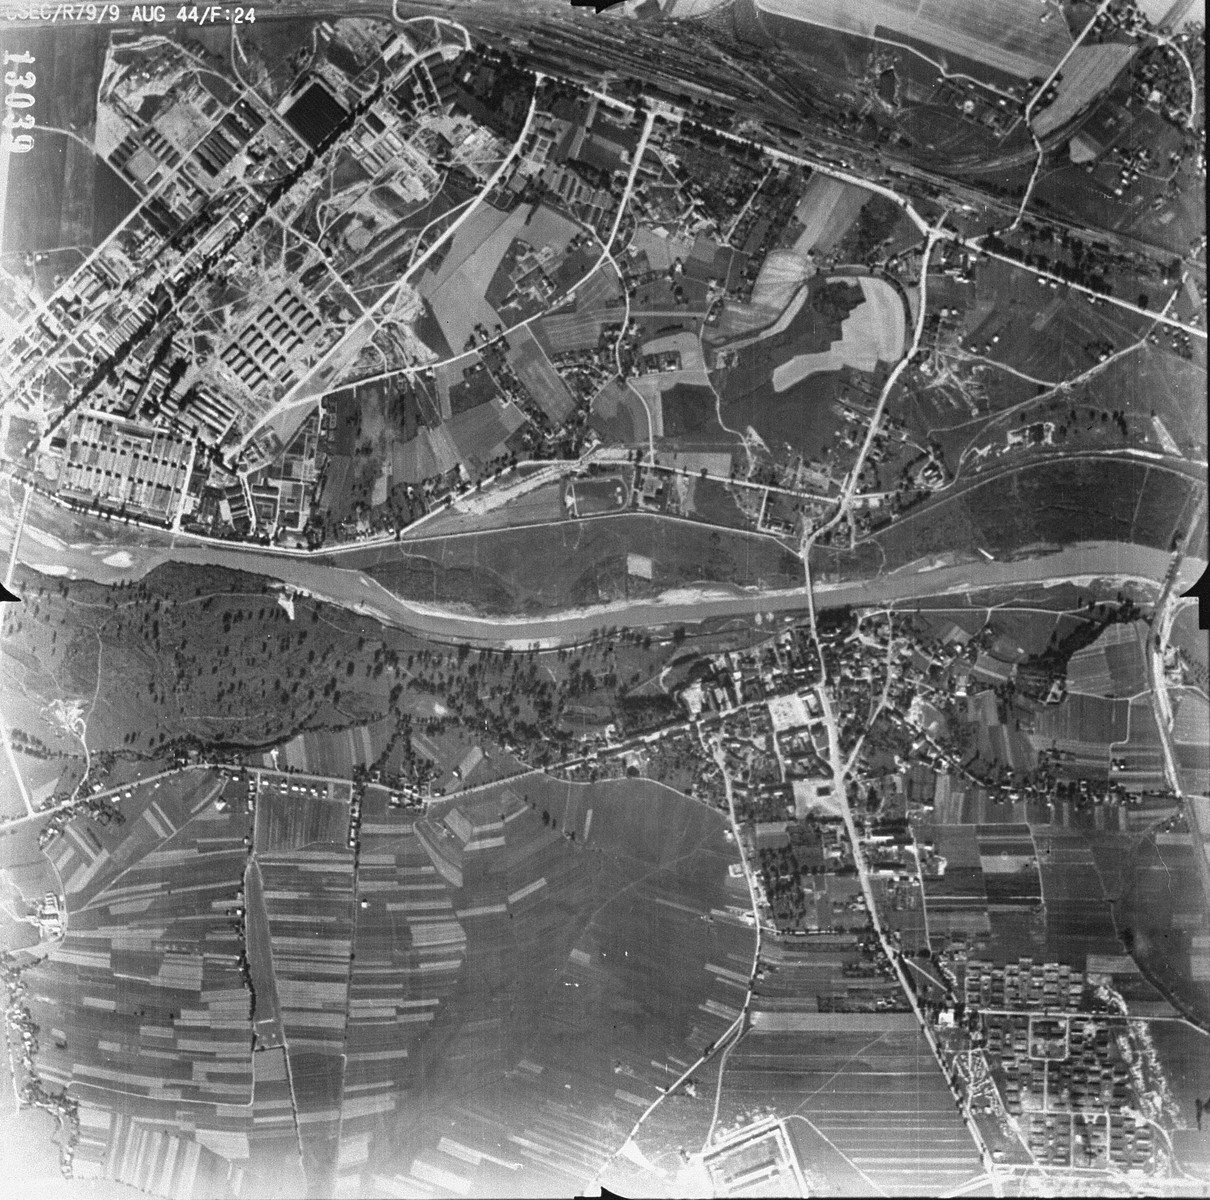 An aerial reconnaissance photo of the Auschwitz area showing a portion of the Auschwitz I main camp. [oversized photograph]